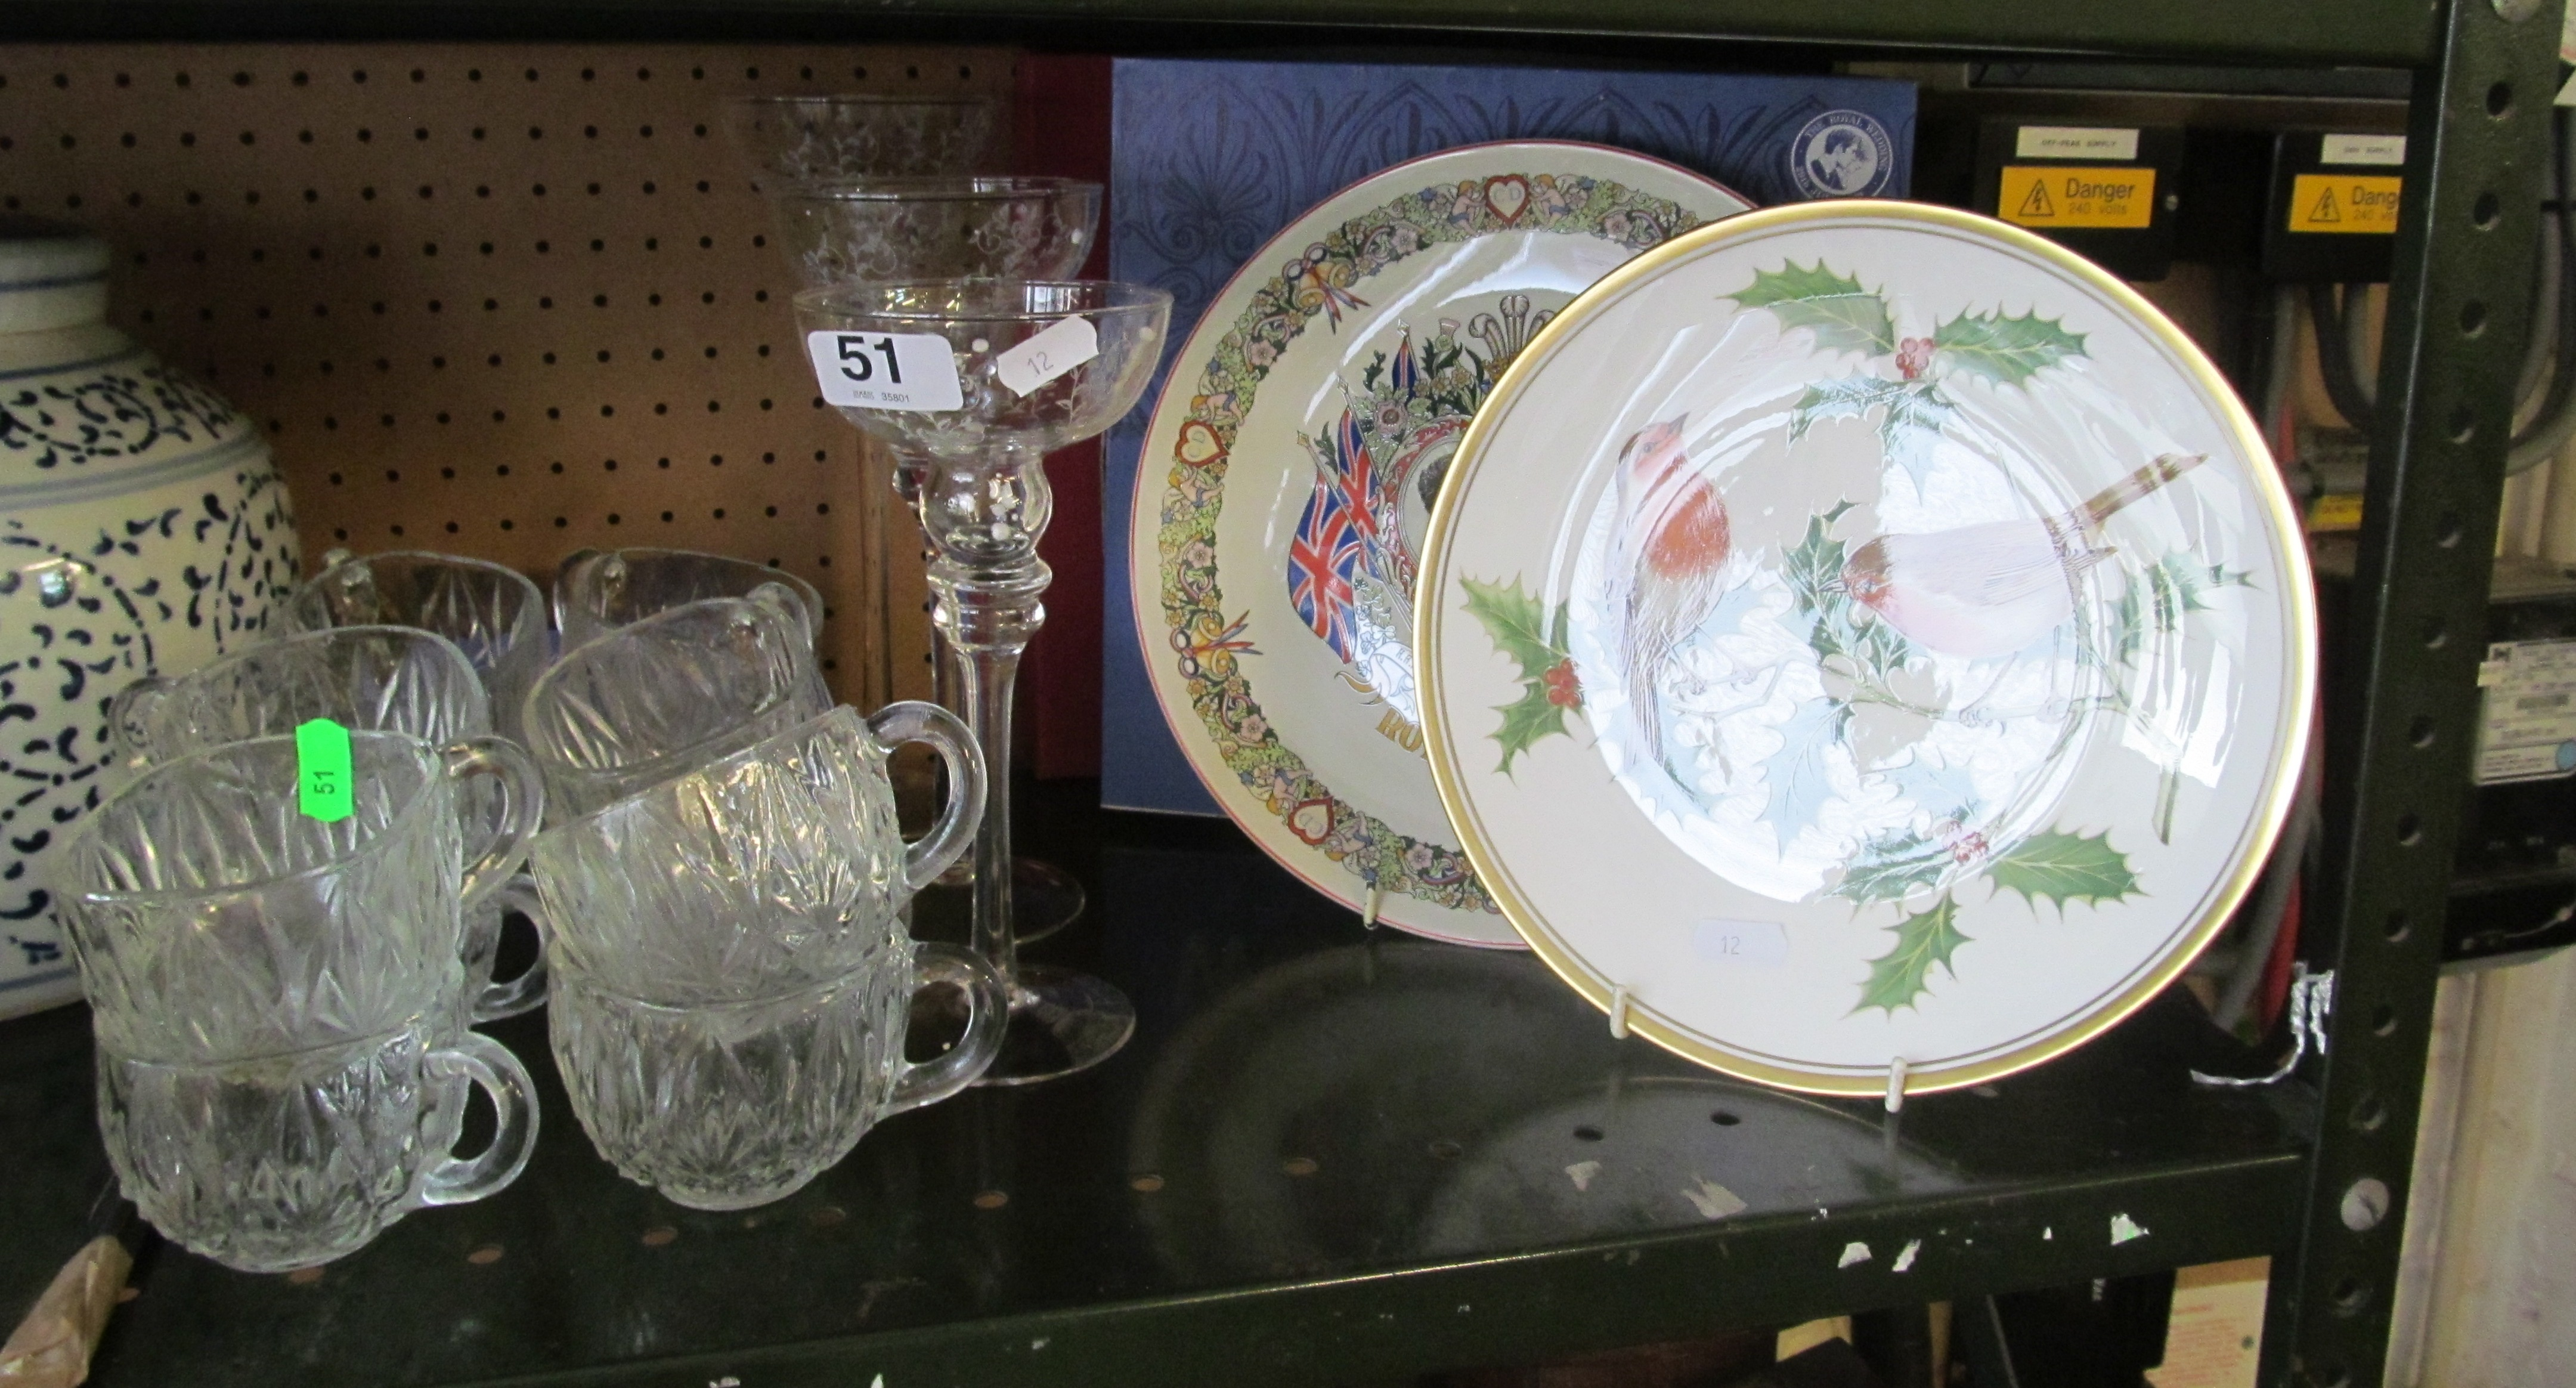 Lot 51 - Three glass candleholders, glass cups, Royal Wedding plate and another Spode plate decorated robins